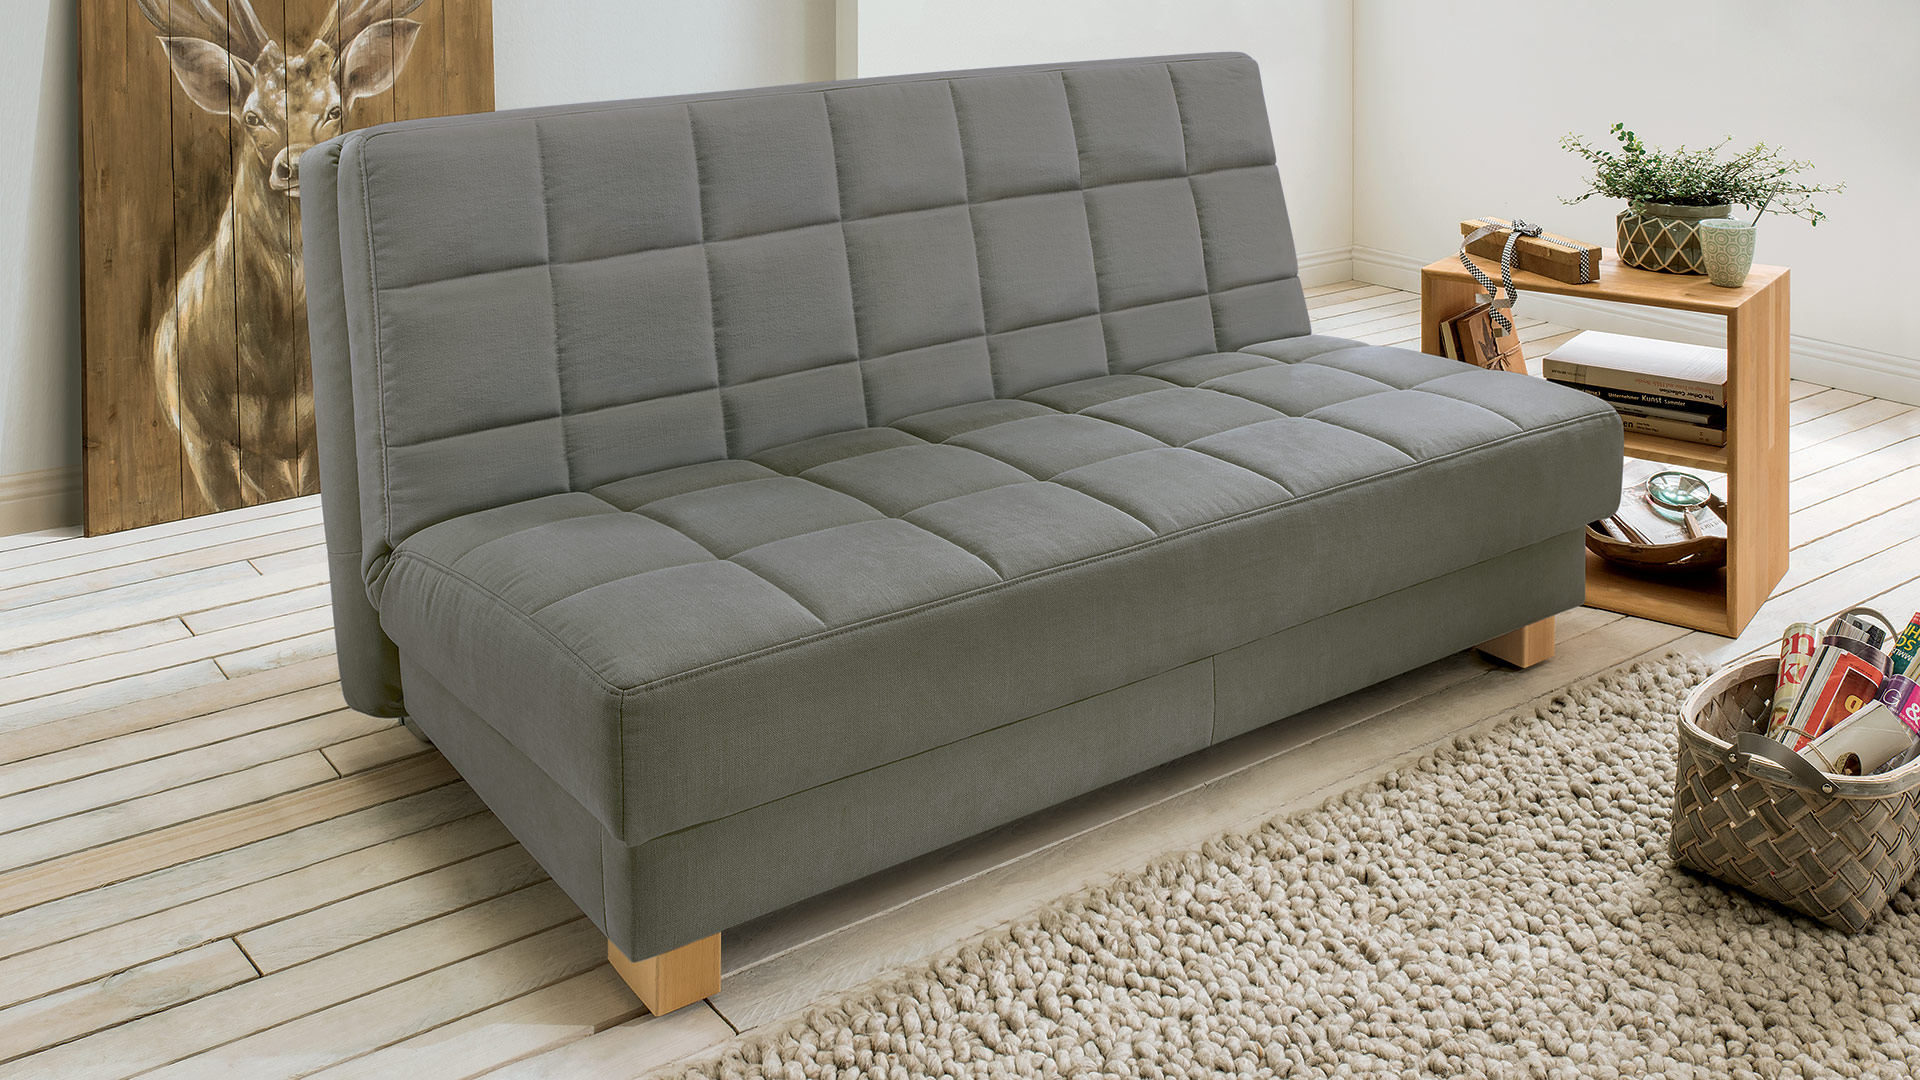 Modernes ökologisches Schlafsofa Made In Germany